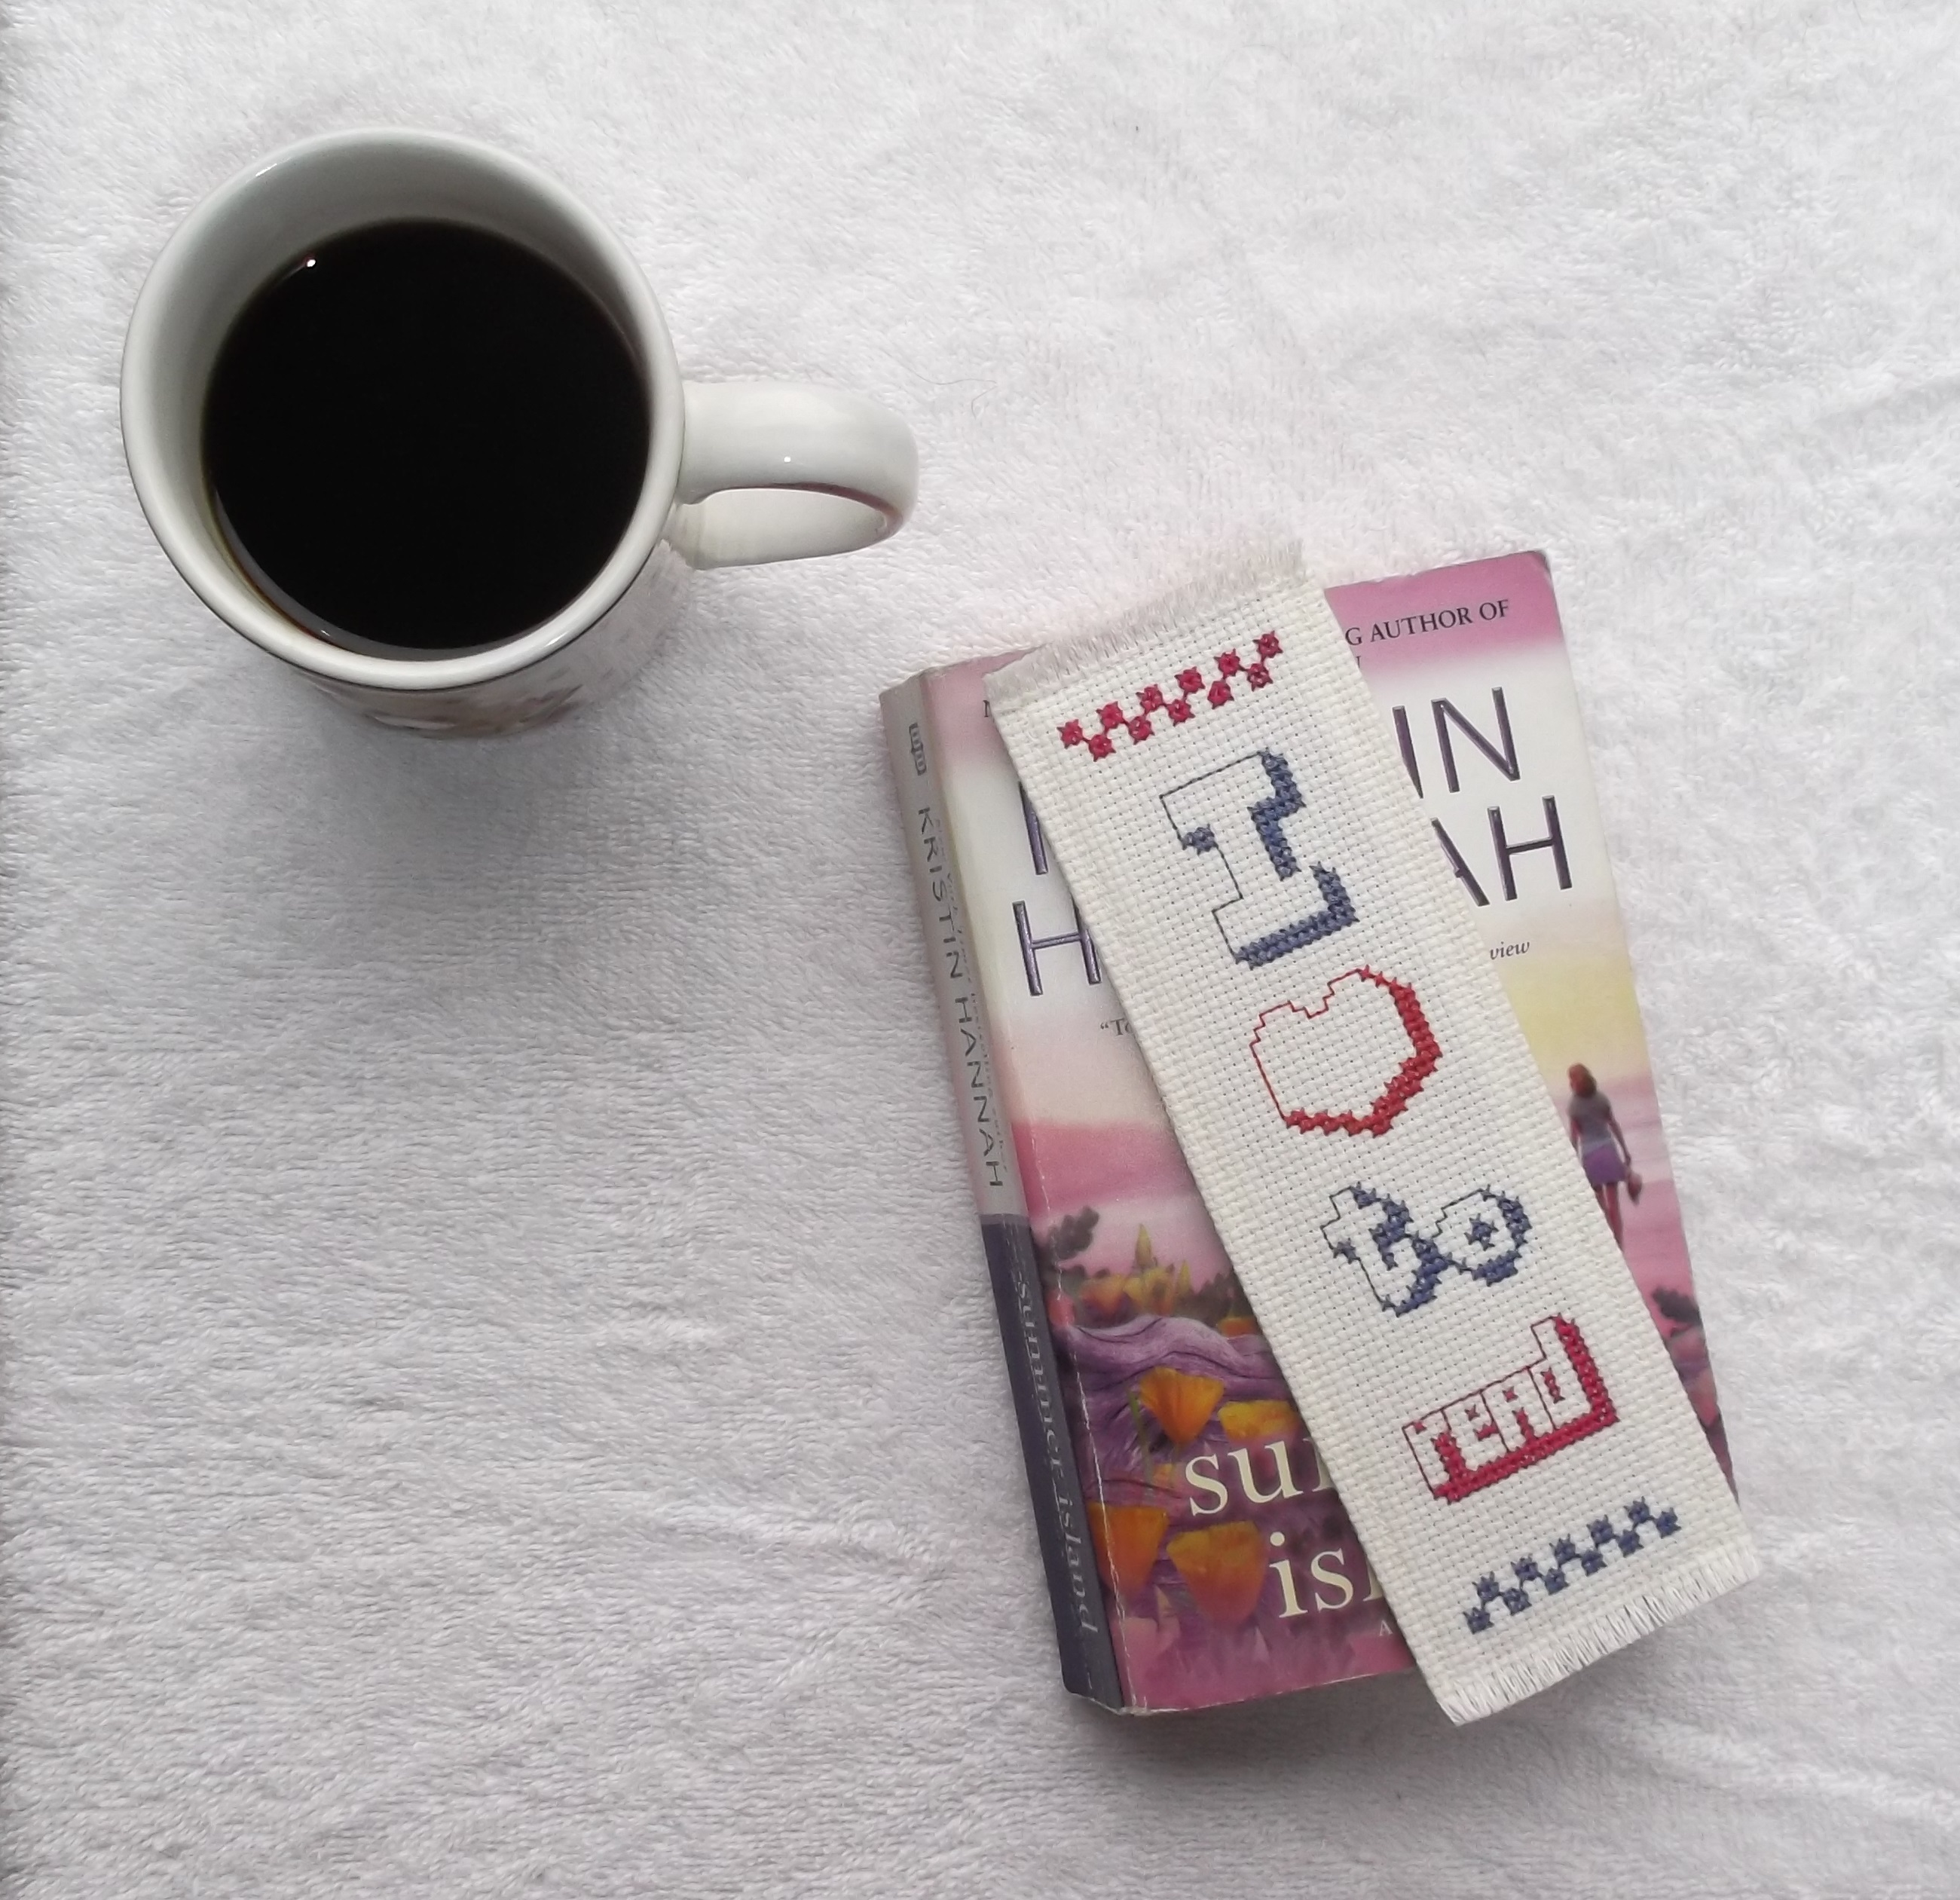 Photo of a bookmark that I made that I recently did not sell on ArtYah dot com.